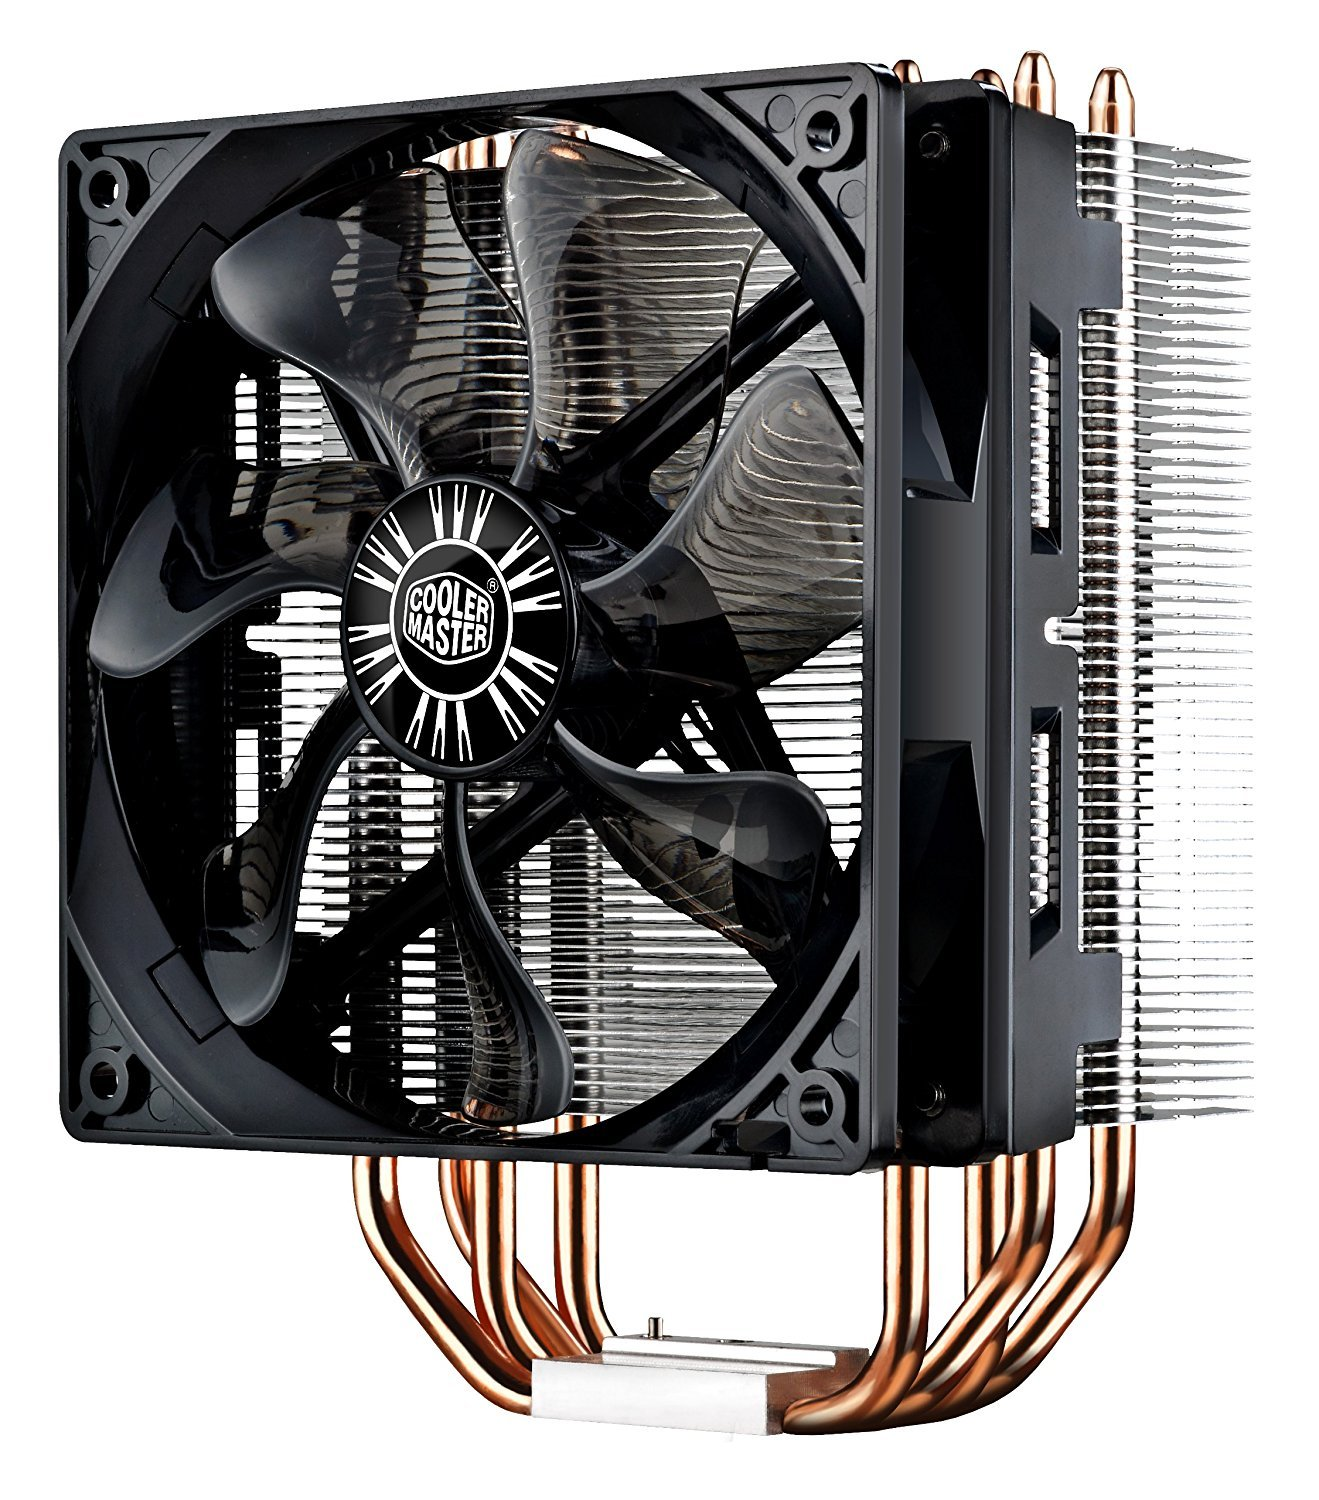 Cooler Master Hyper 212 Evo Rr 212e 20pk R2 Cpu Switch Wiring Pc Fan Cool With Pwm Four Direct Contact Heat Pipes Electronics